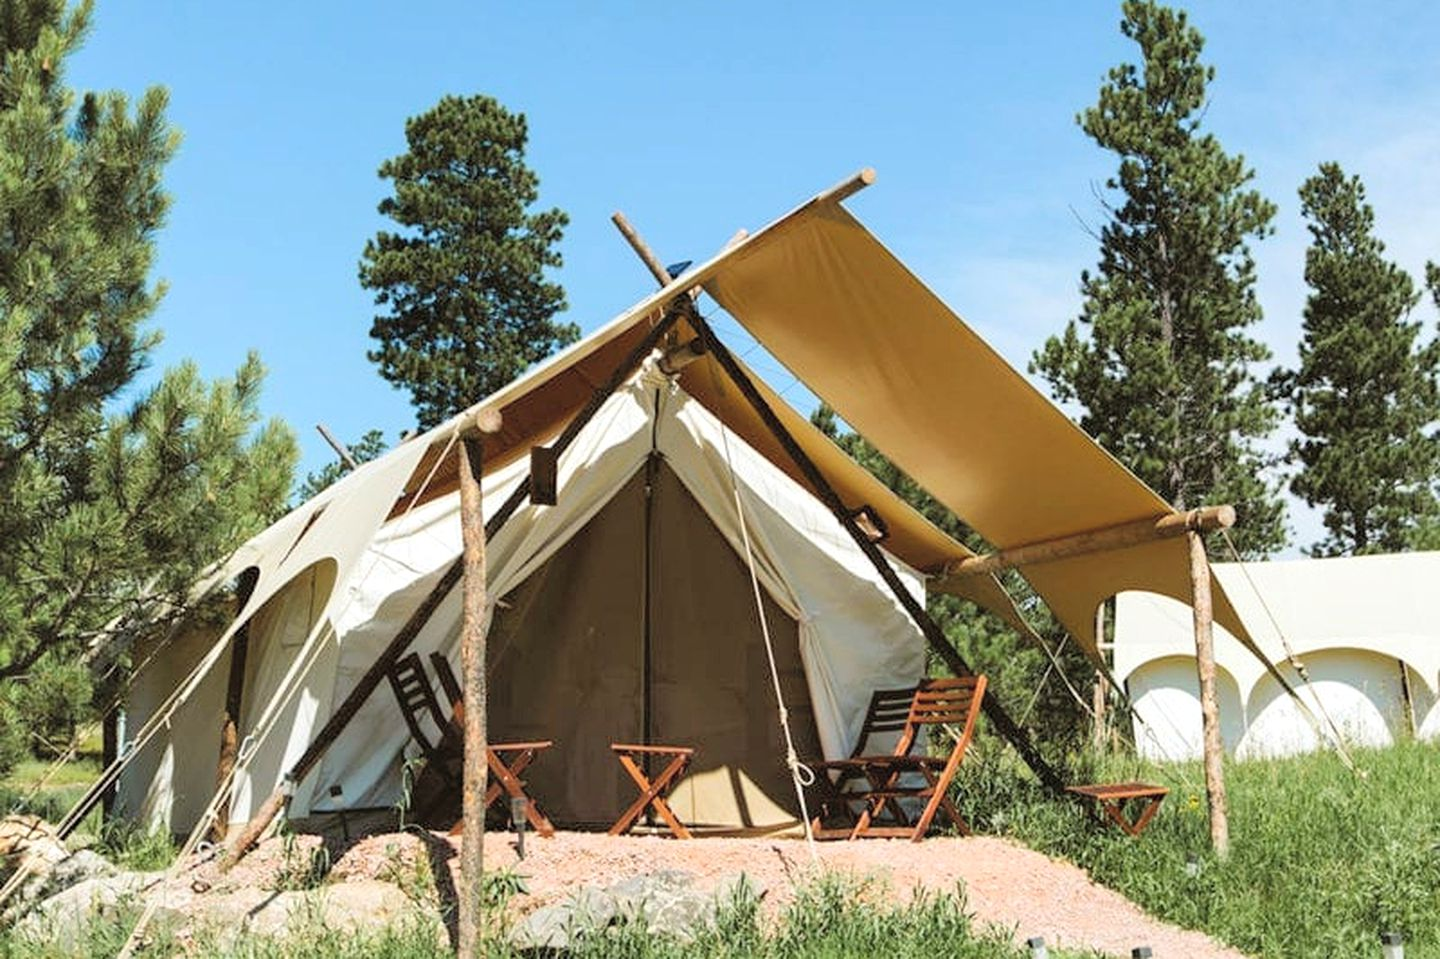 Safari Tents (Keystone, South Dakota, United States)